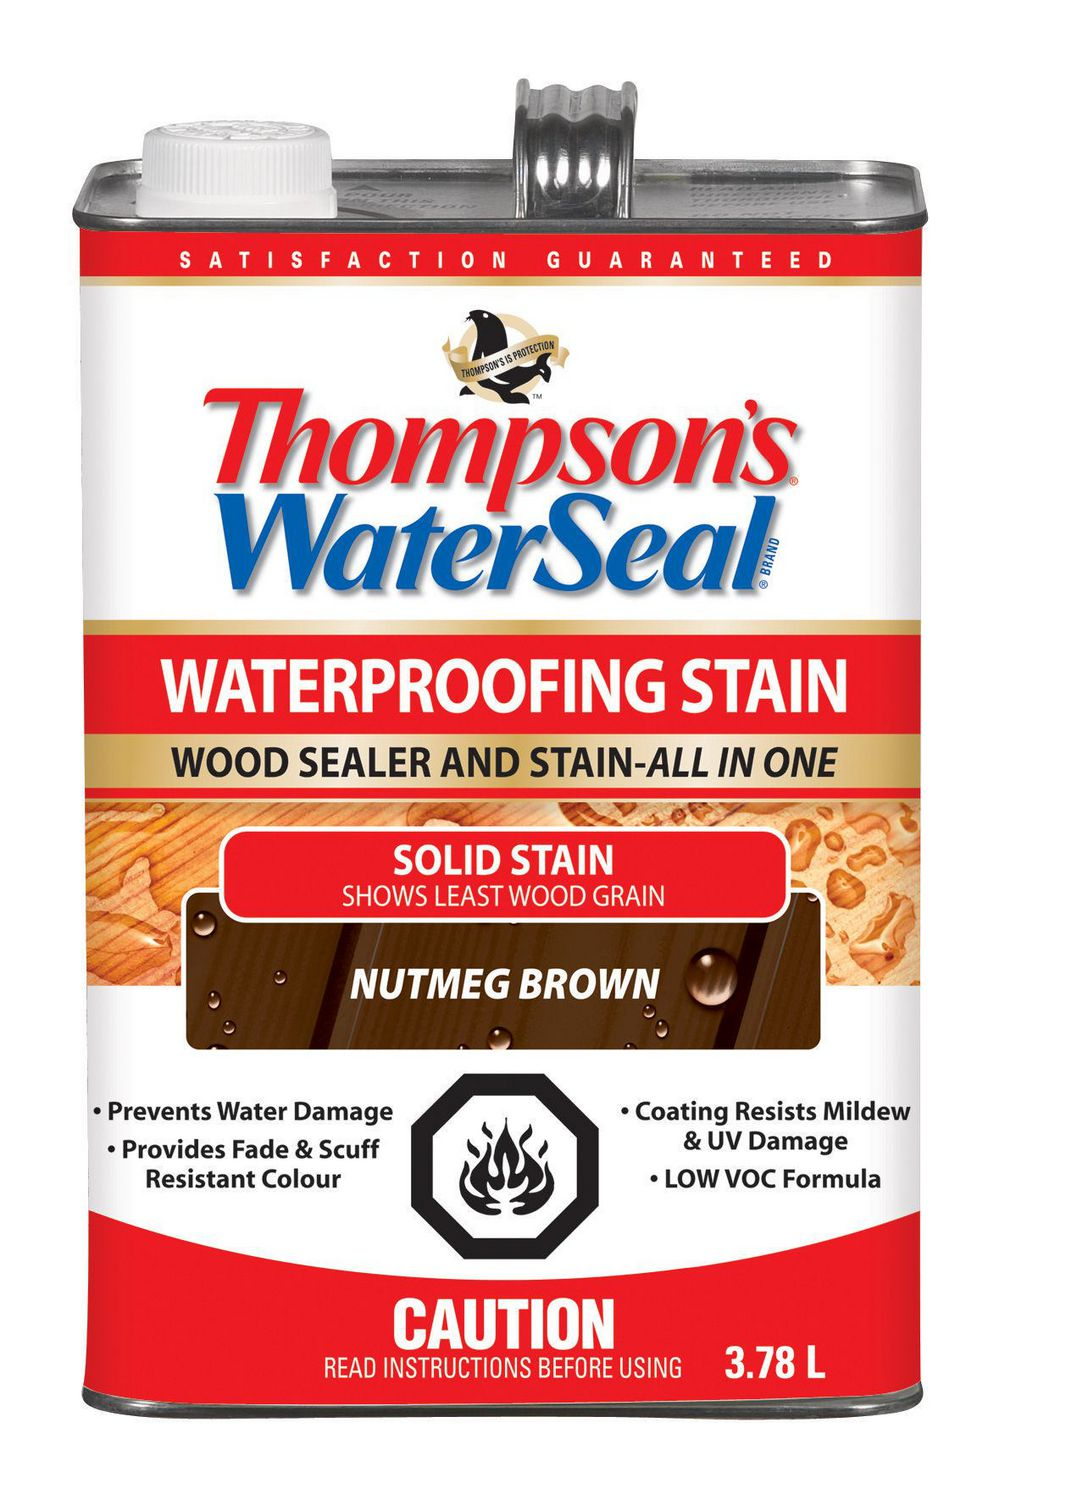 Walmart Furniture Online: Thompson's WaterSeal All In One Waterproofing Stain And